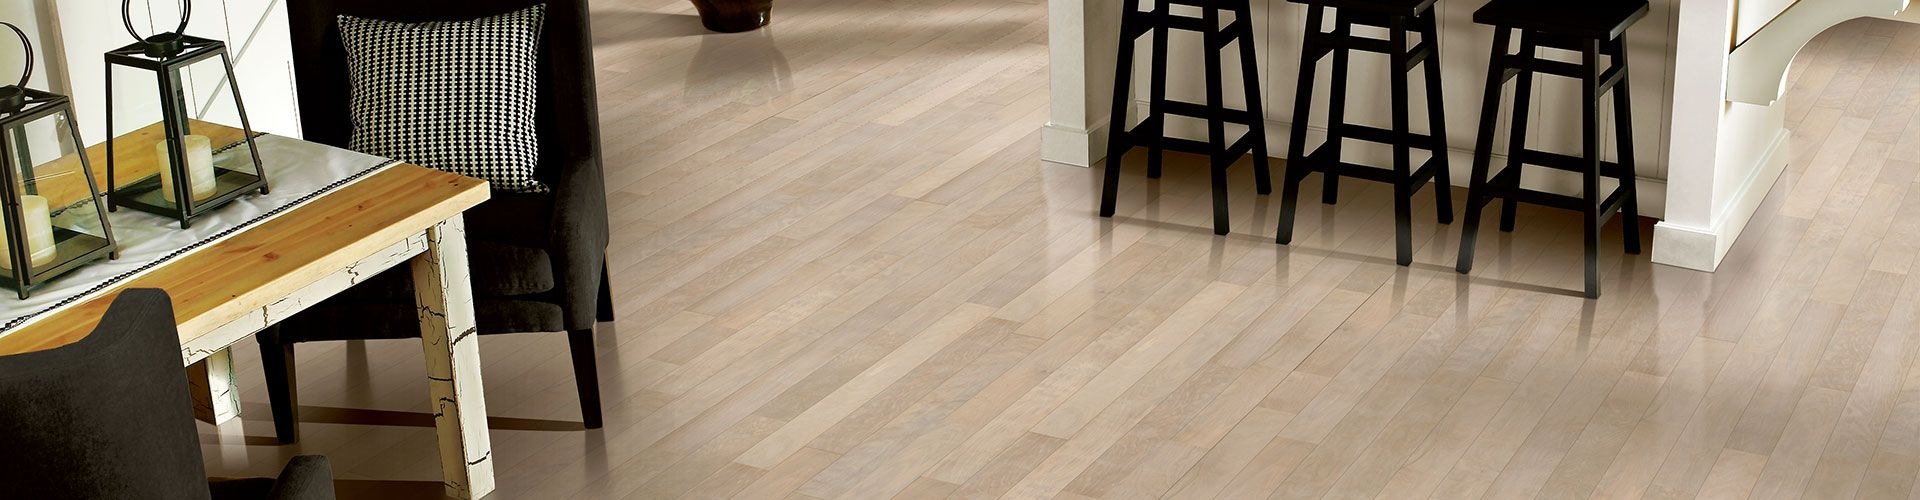 First Cl Wood Flooring Is The Only Reliable Resource For Natural And Engineered Hardwood Floors That Homeowners In All Towns Including Brookhaven